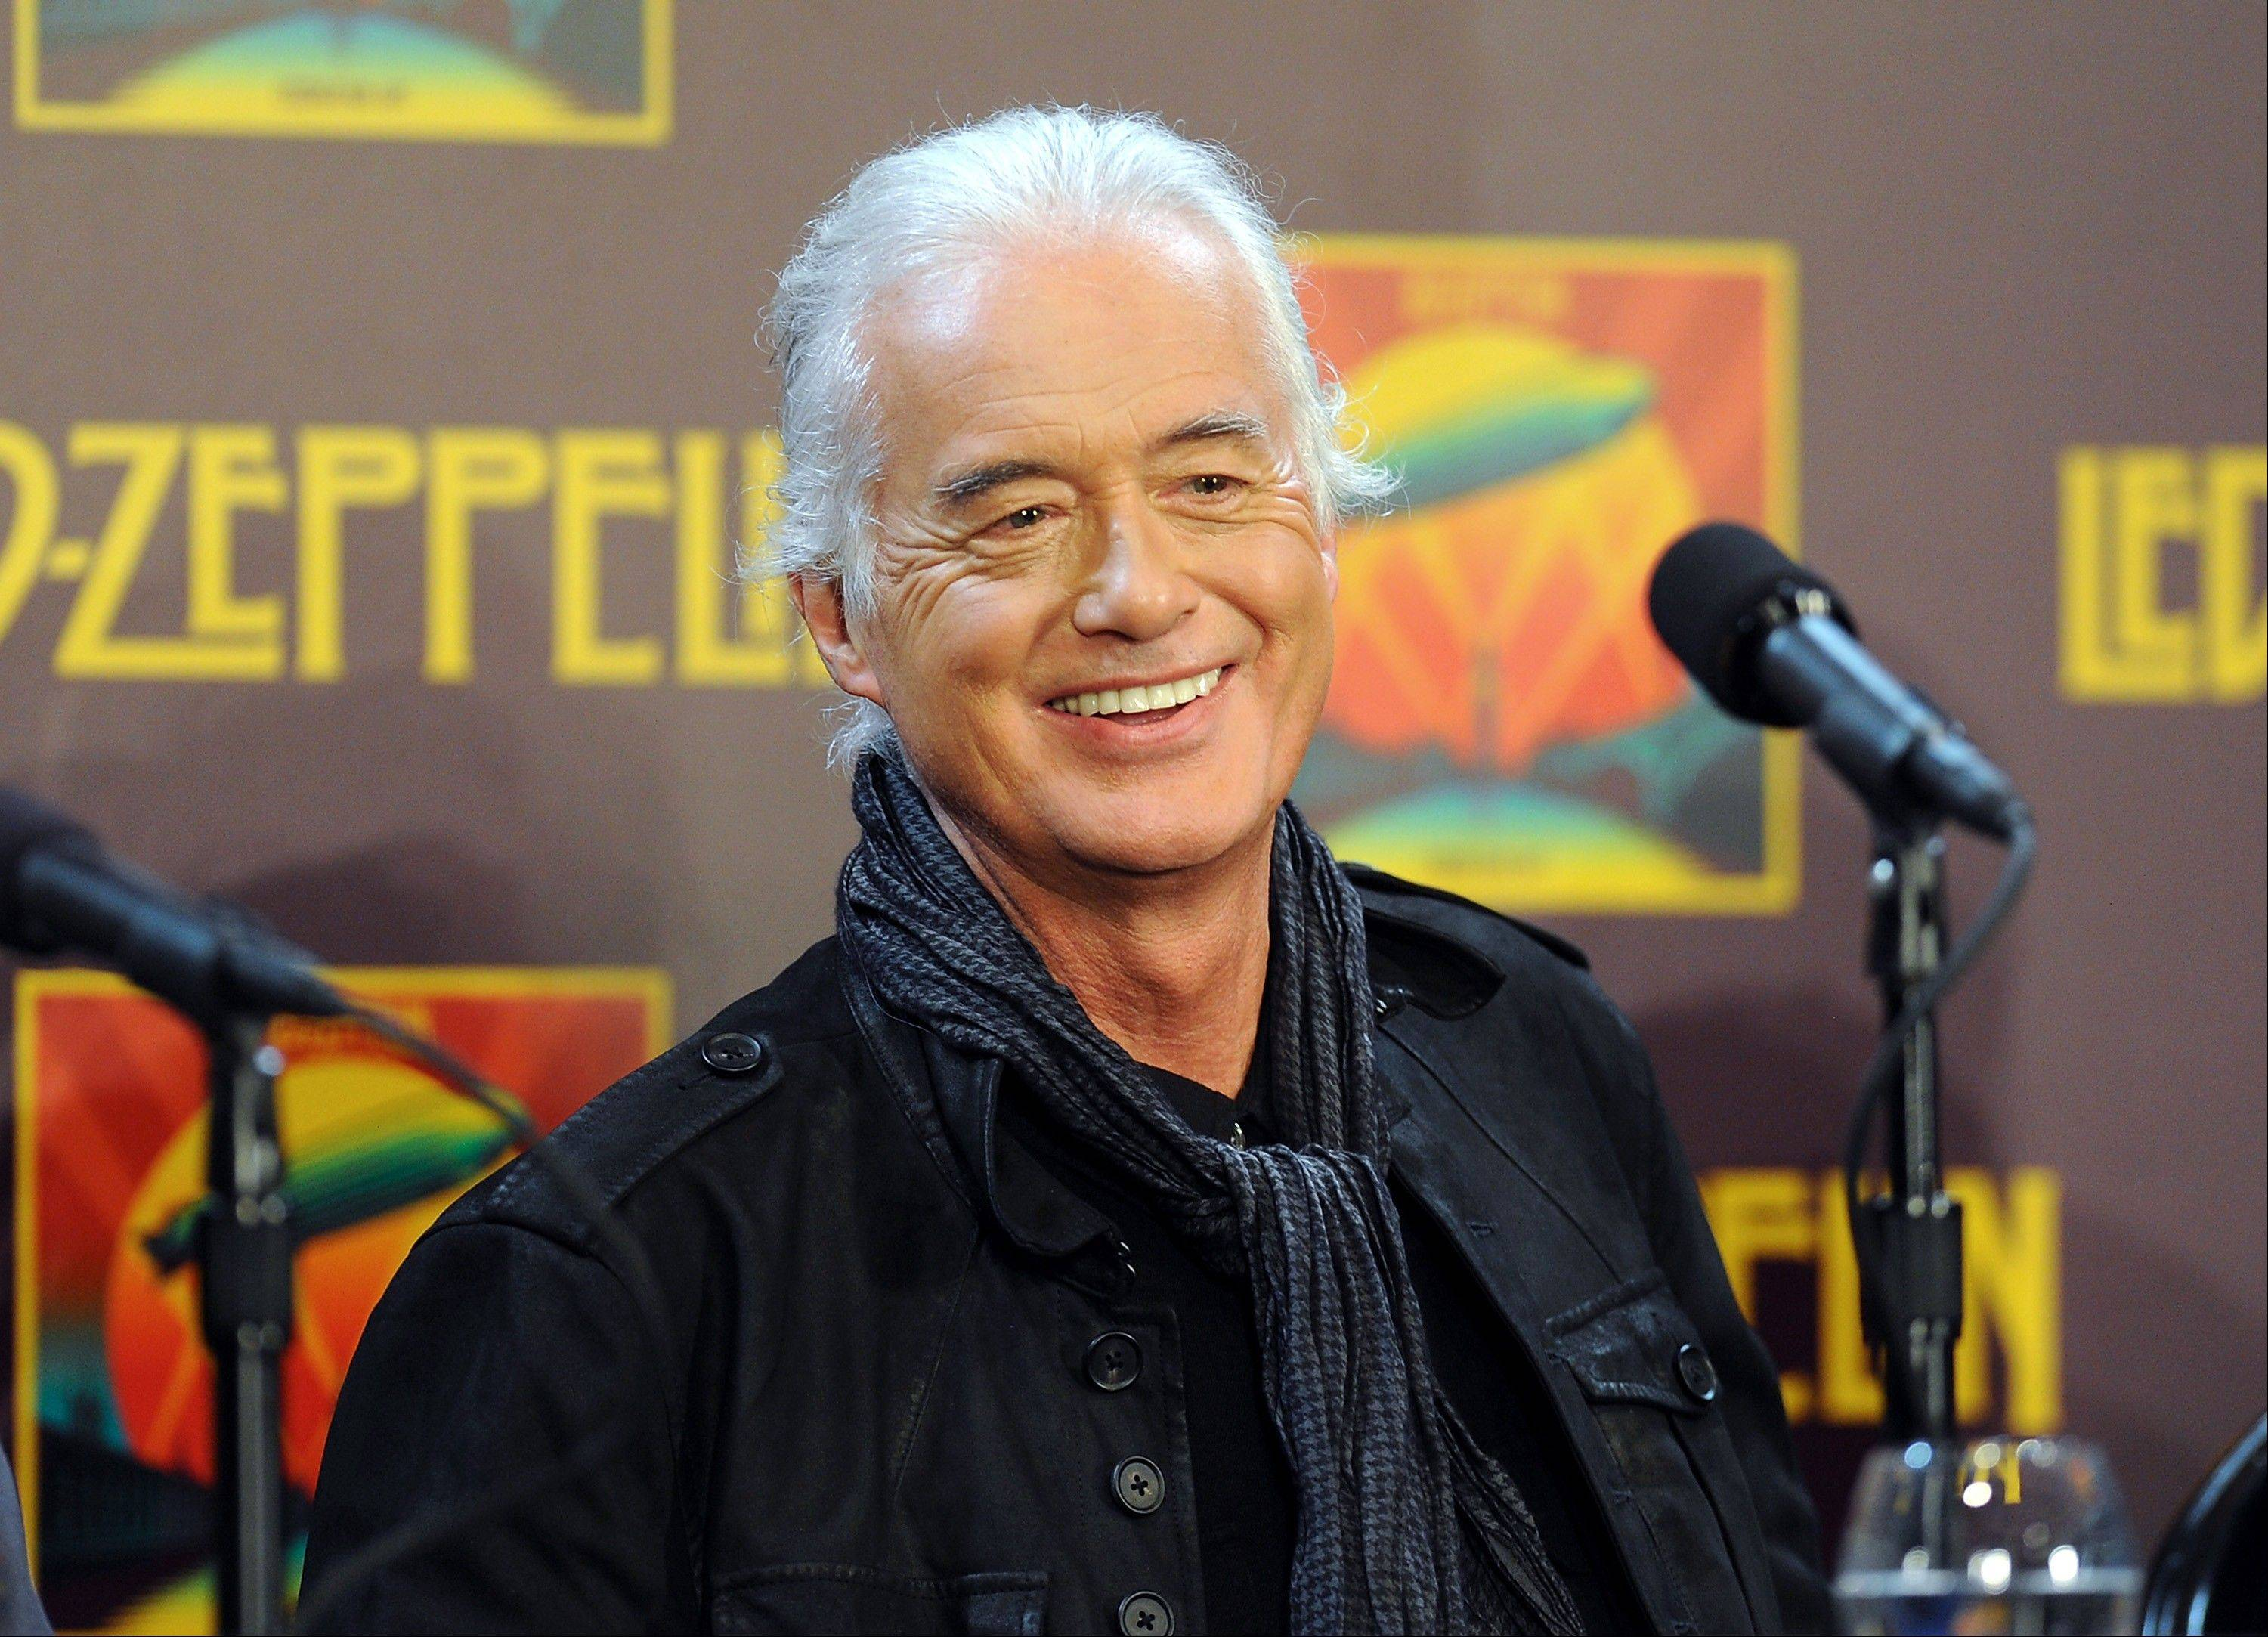 Led Zeppelin Guitarist Jimmy Page participates in a press conference ahead of the worldwide theatrical release of �Celebration Day�, a concert film of their 2007 London O2 arena reunion show, at the Museum of Modern Art on Tuesday, Oct. 9, 2012 in New York.